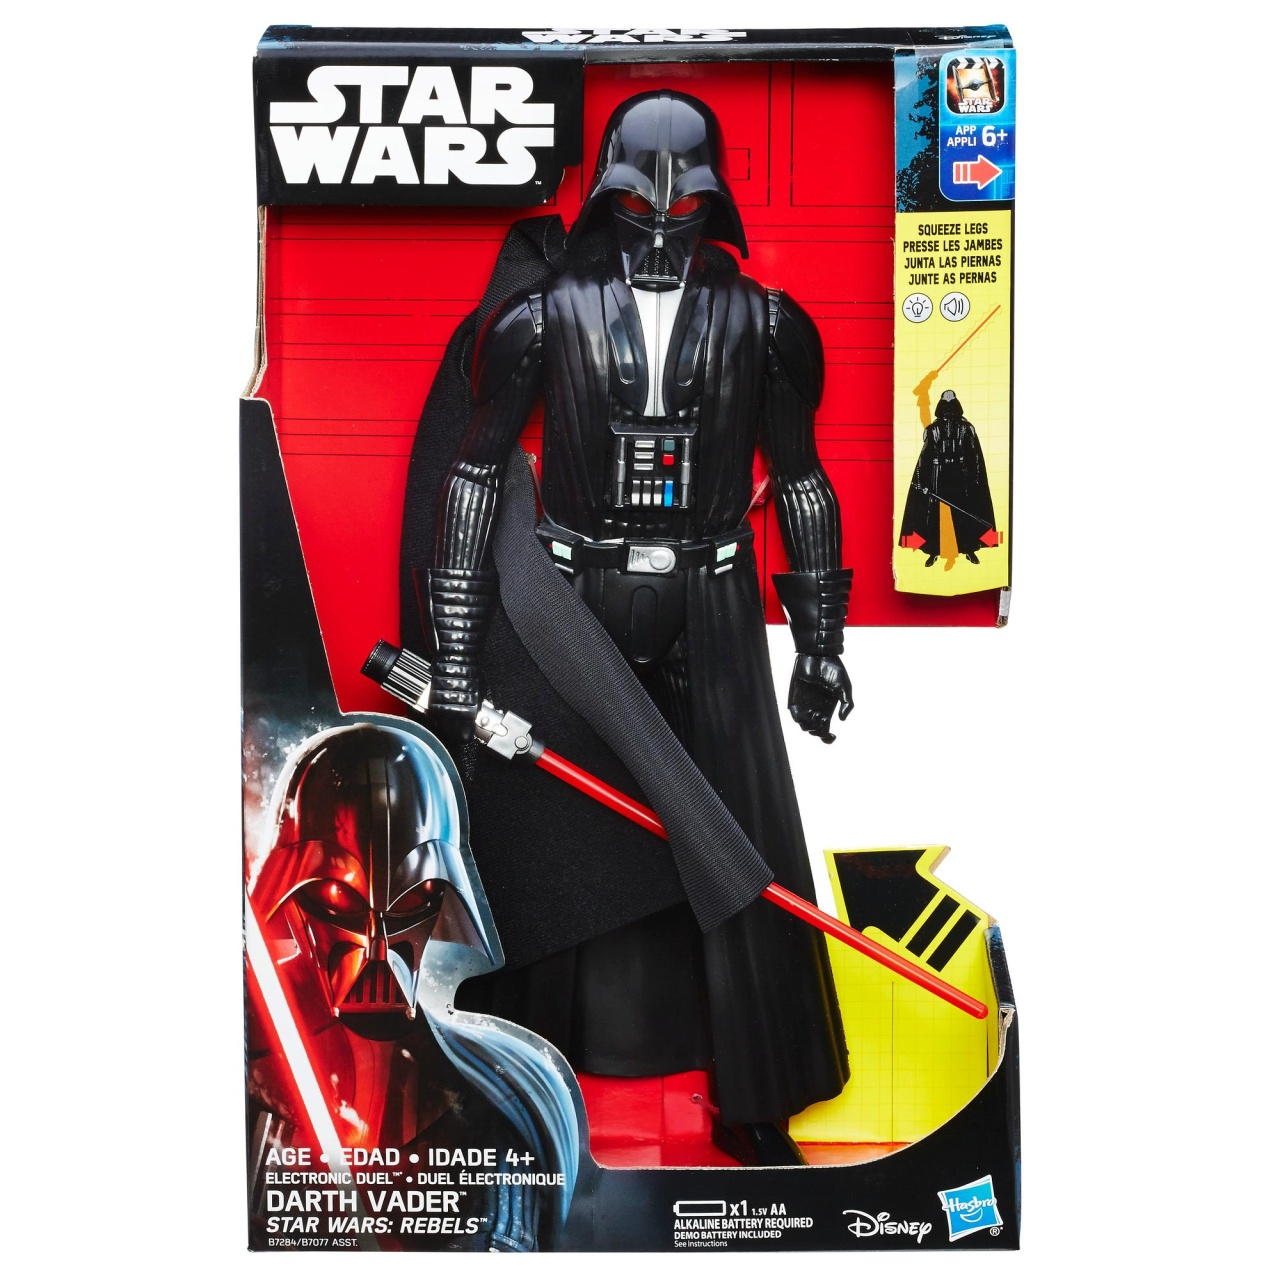 Star Wars Rogue One Figur Darth Vader